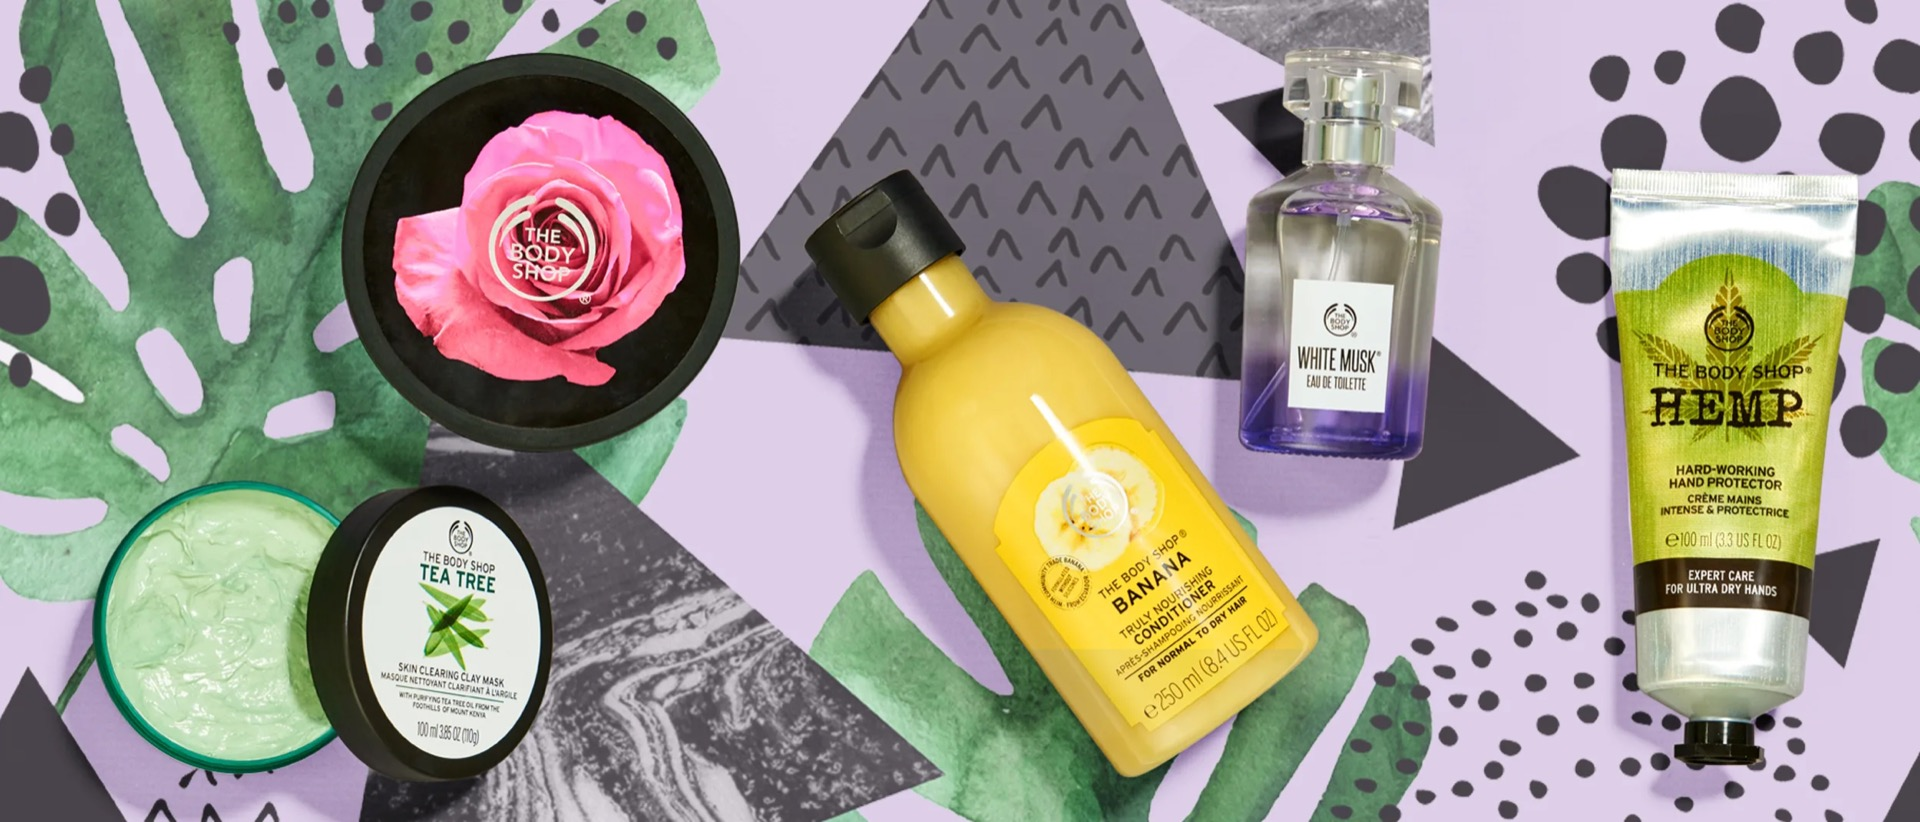 The Body Shop Online FREE Delivery Promotion (1 April 2020